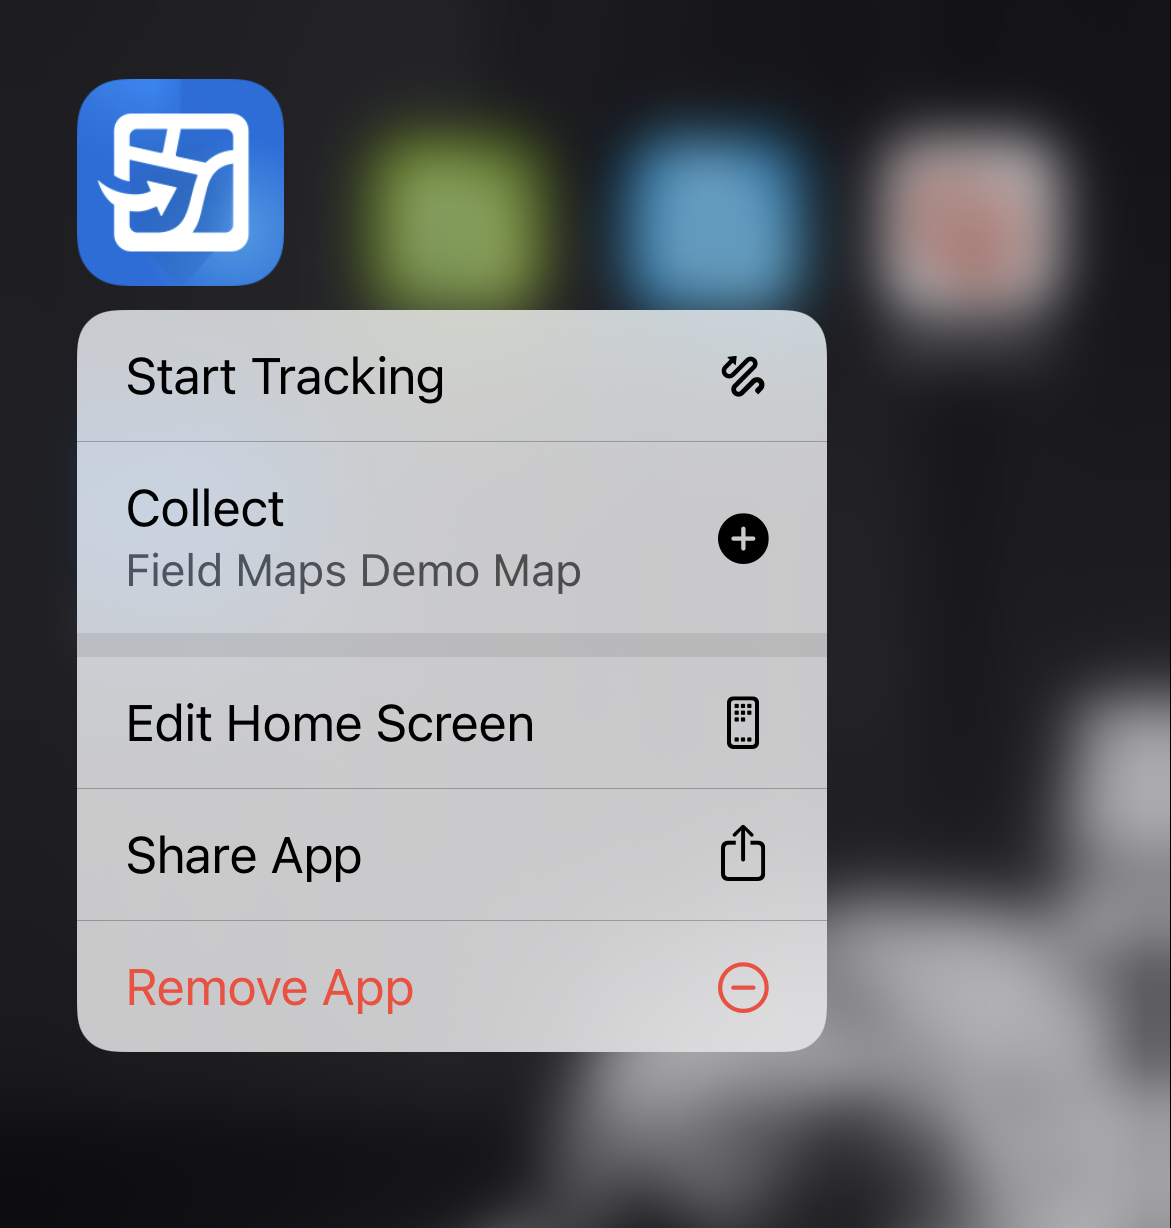 screenshot of a phone with quick options to start tracking shown